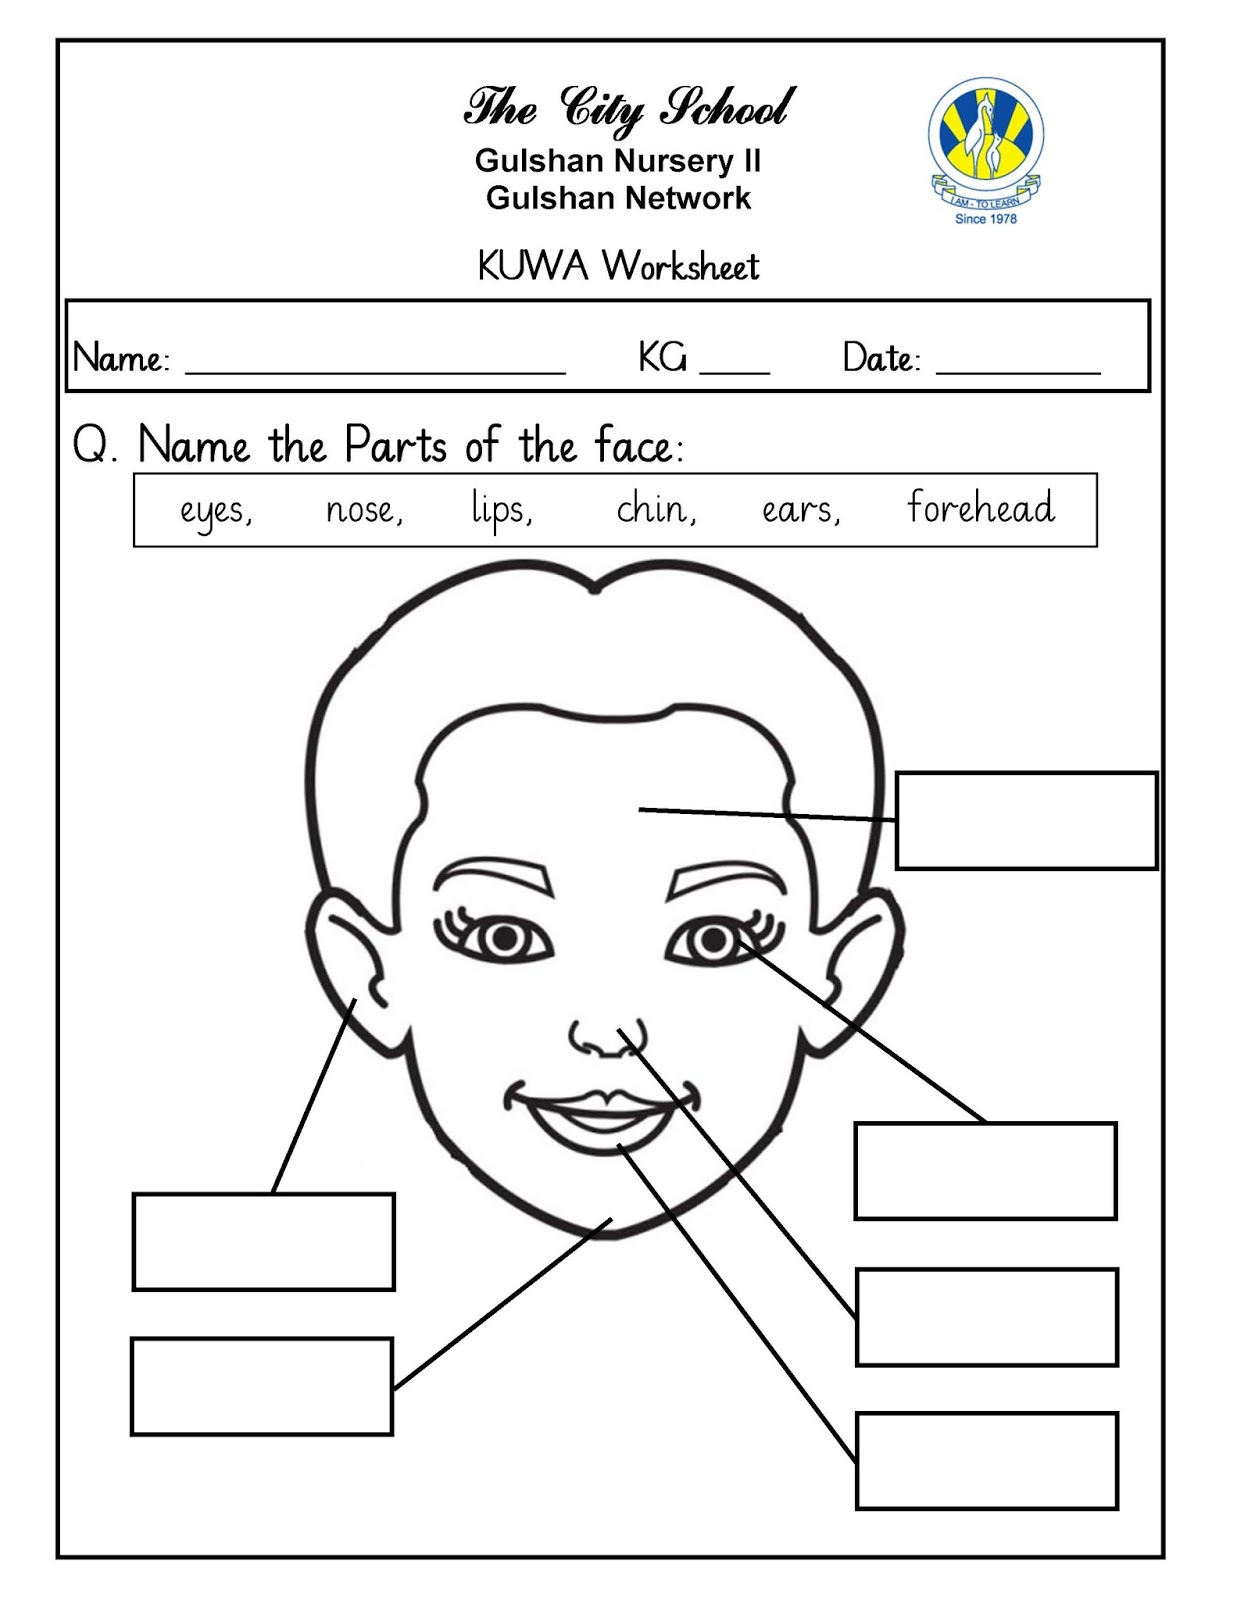 Sr Gulshan The City Nursery Ii Math Kuwa And English Worksheets